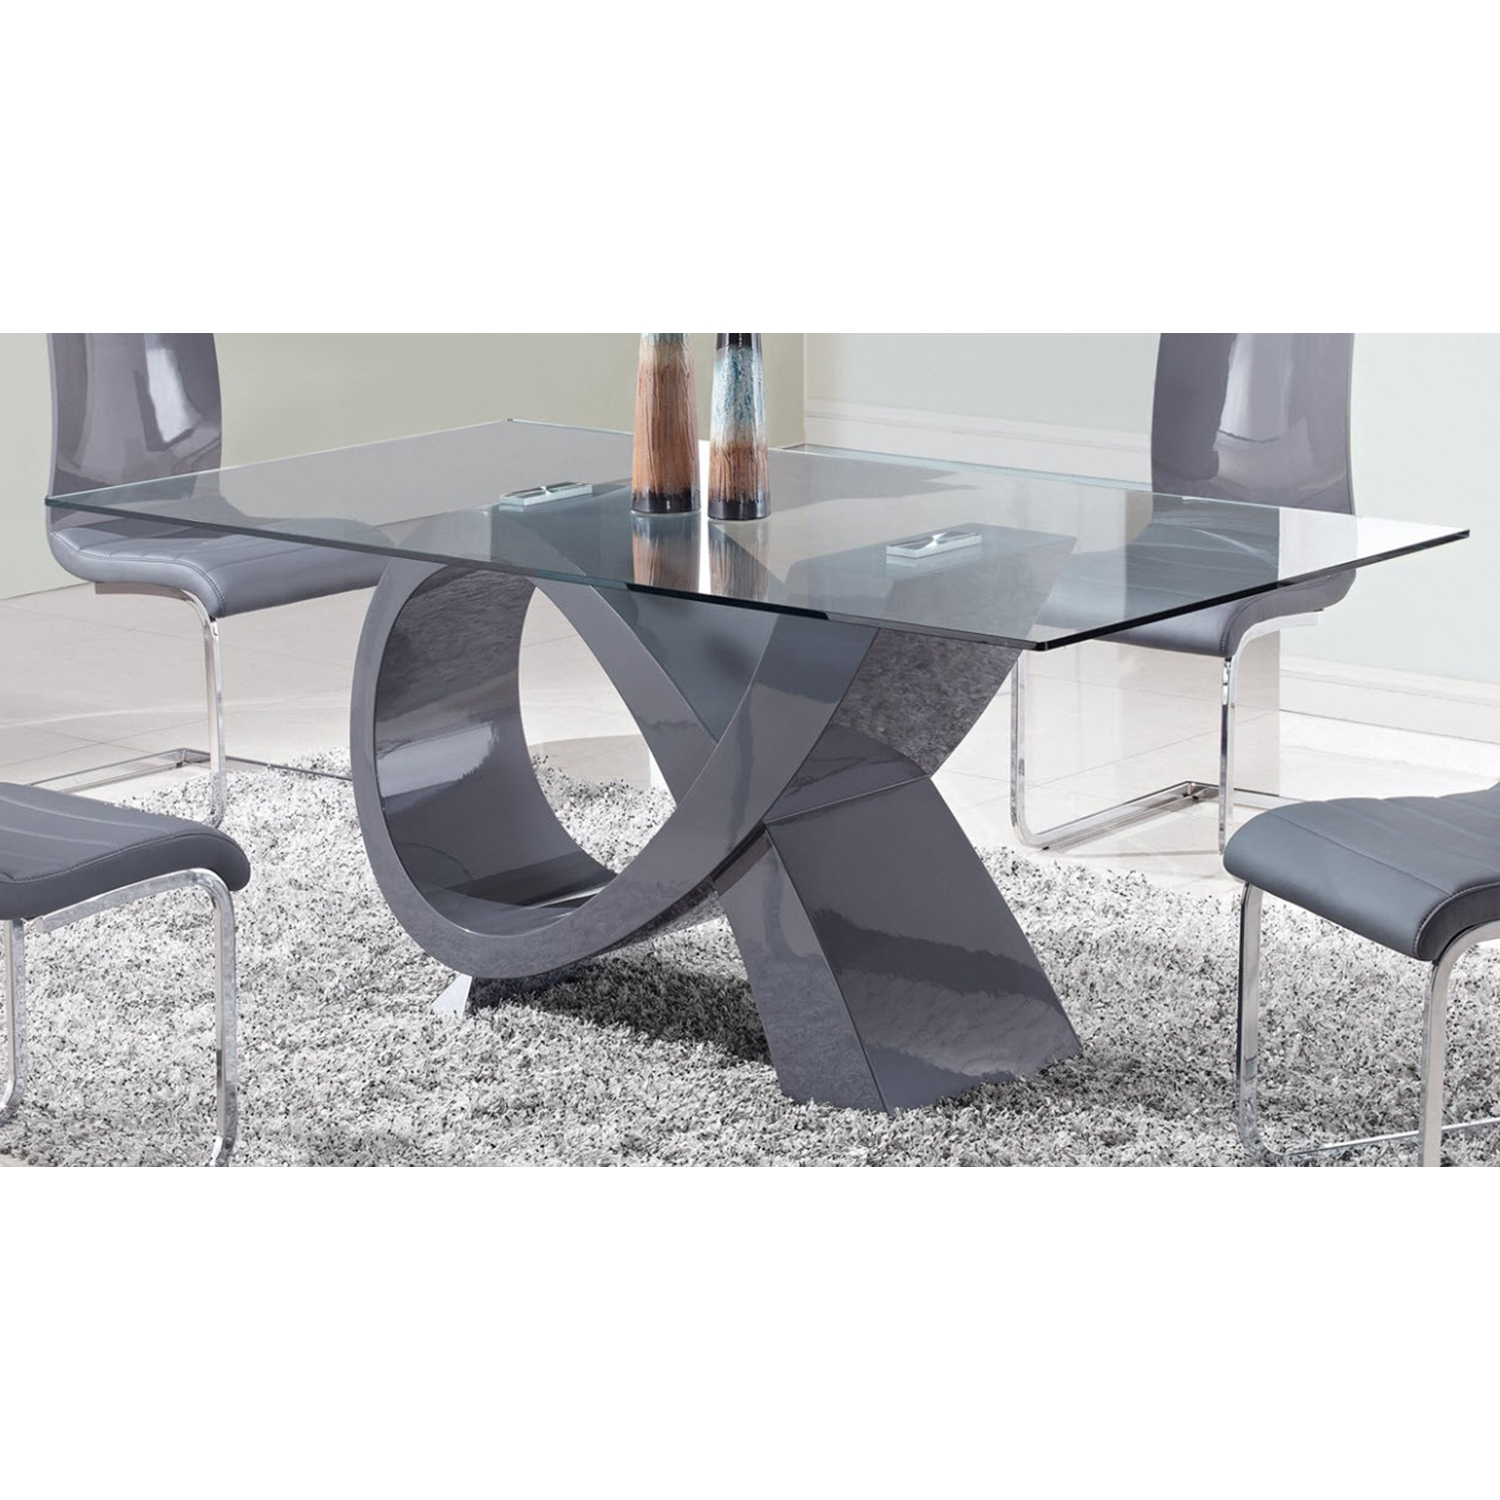 Sergio Dining Table in High Gloss Gray - GLO-D989DT